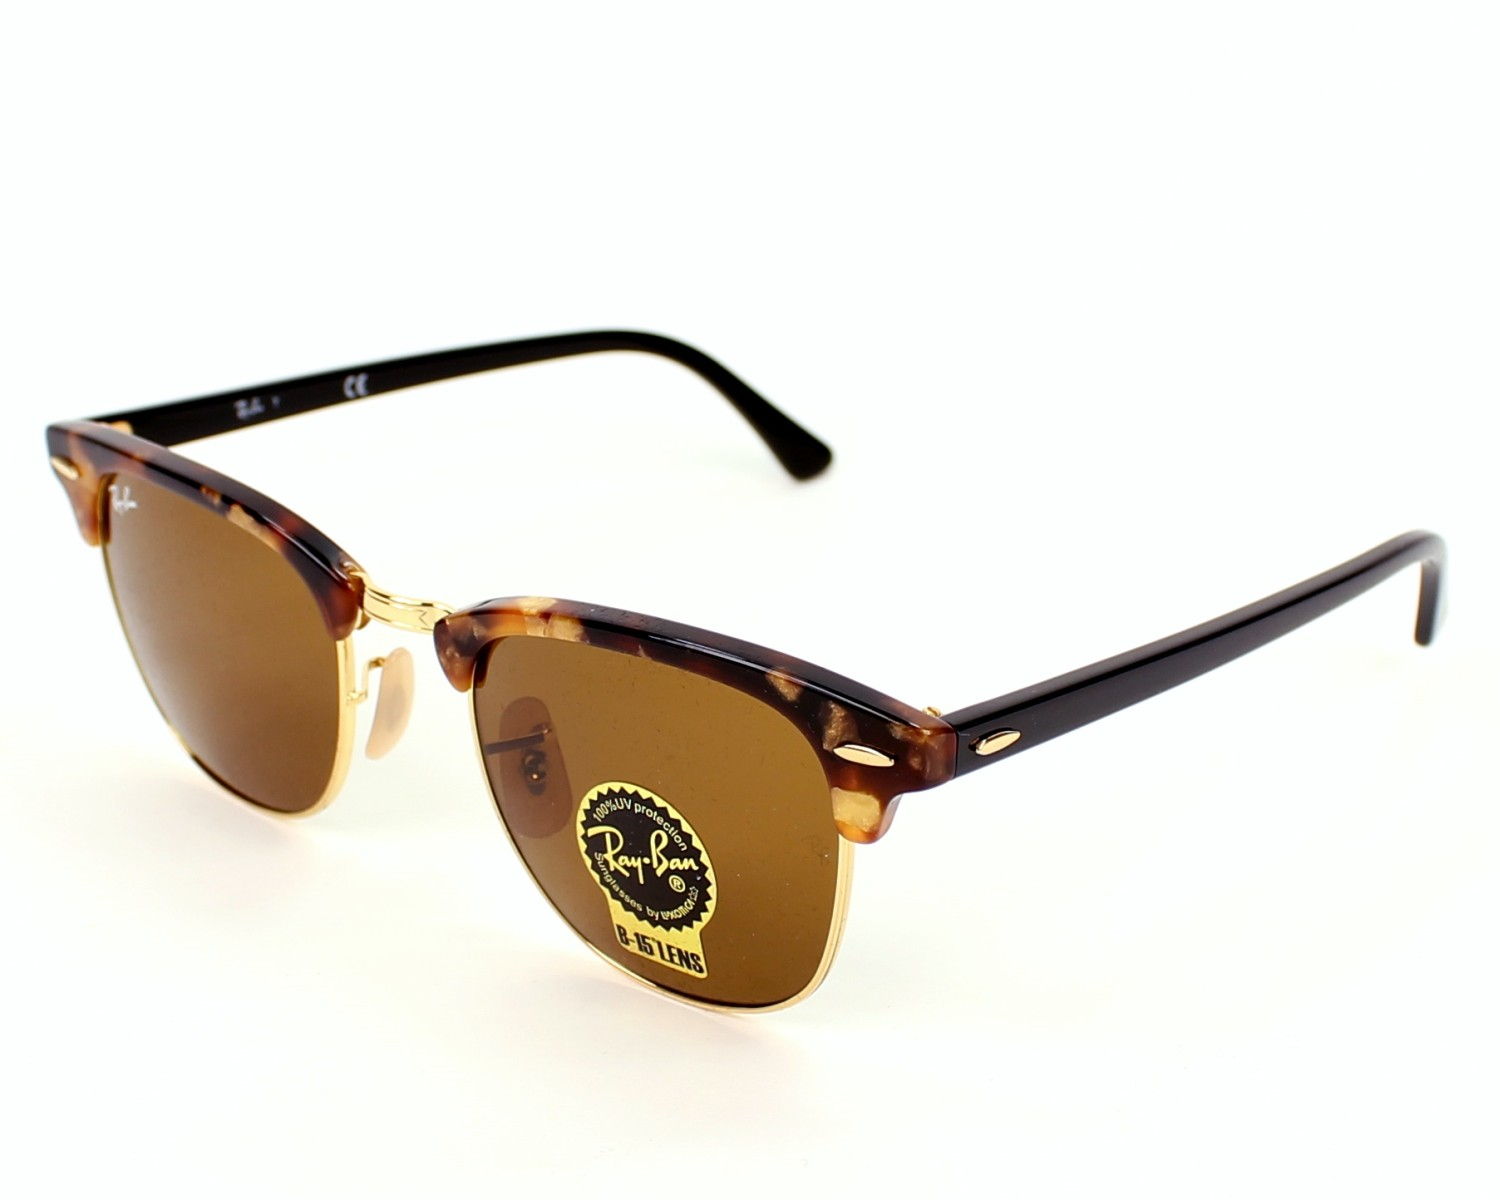 Sunglasses Ray-Ban RB-3016 1160 49-21 Brown Black profile view 5d93c023e9